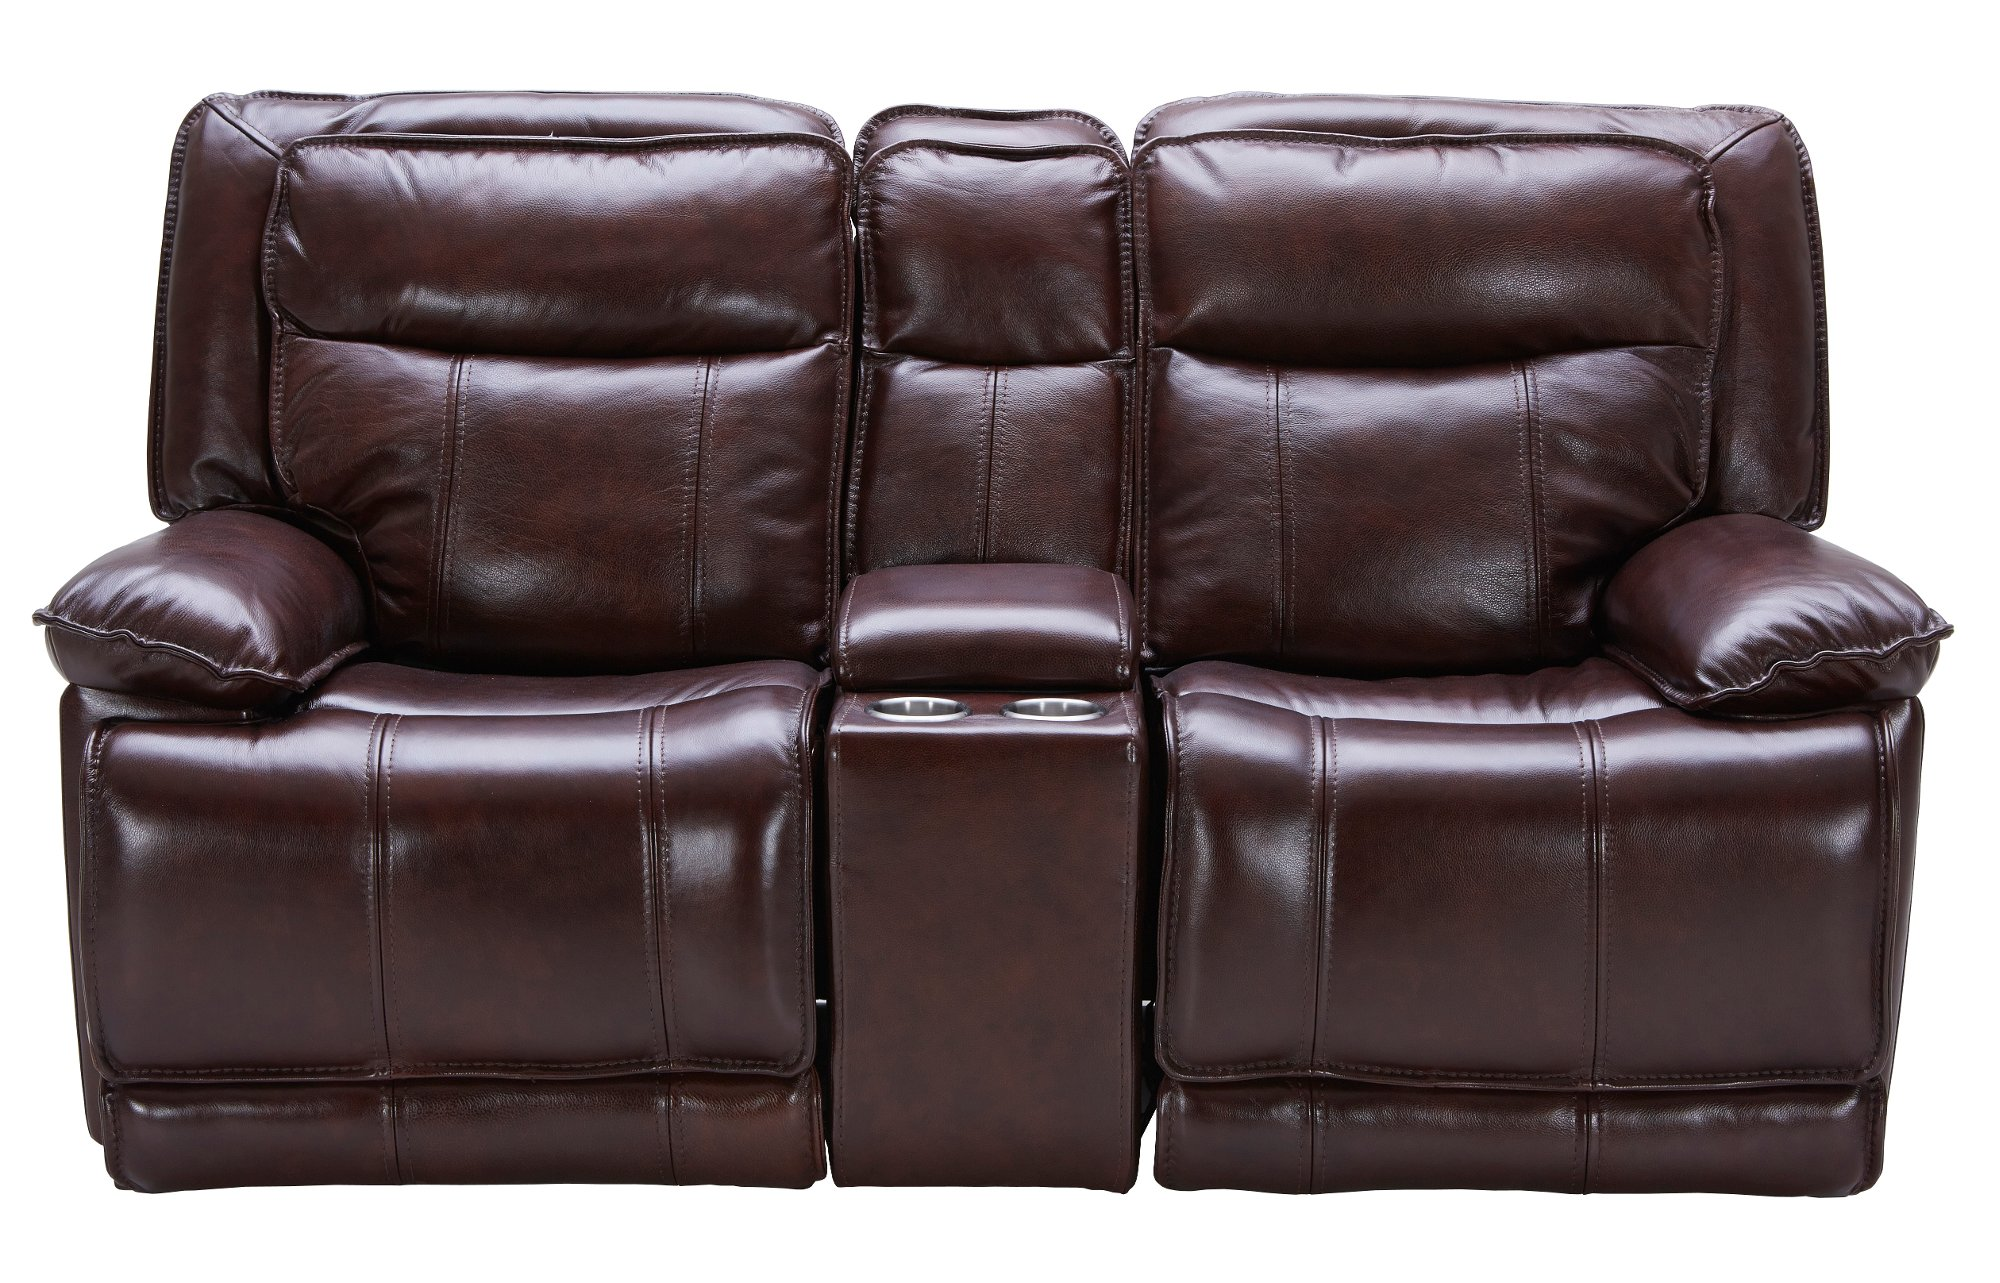 Bordeaux Burgundy Leather-Match Power Glider Reclining Loveseat - K-Motion  sc 1 st  RC Willey & Bordeaux Burgundy Leather-Match Power Reclining Sofa u0026 Loveseat ... islam-shia.org